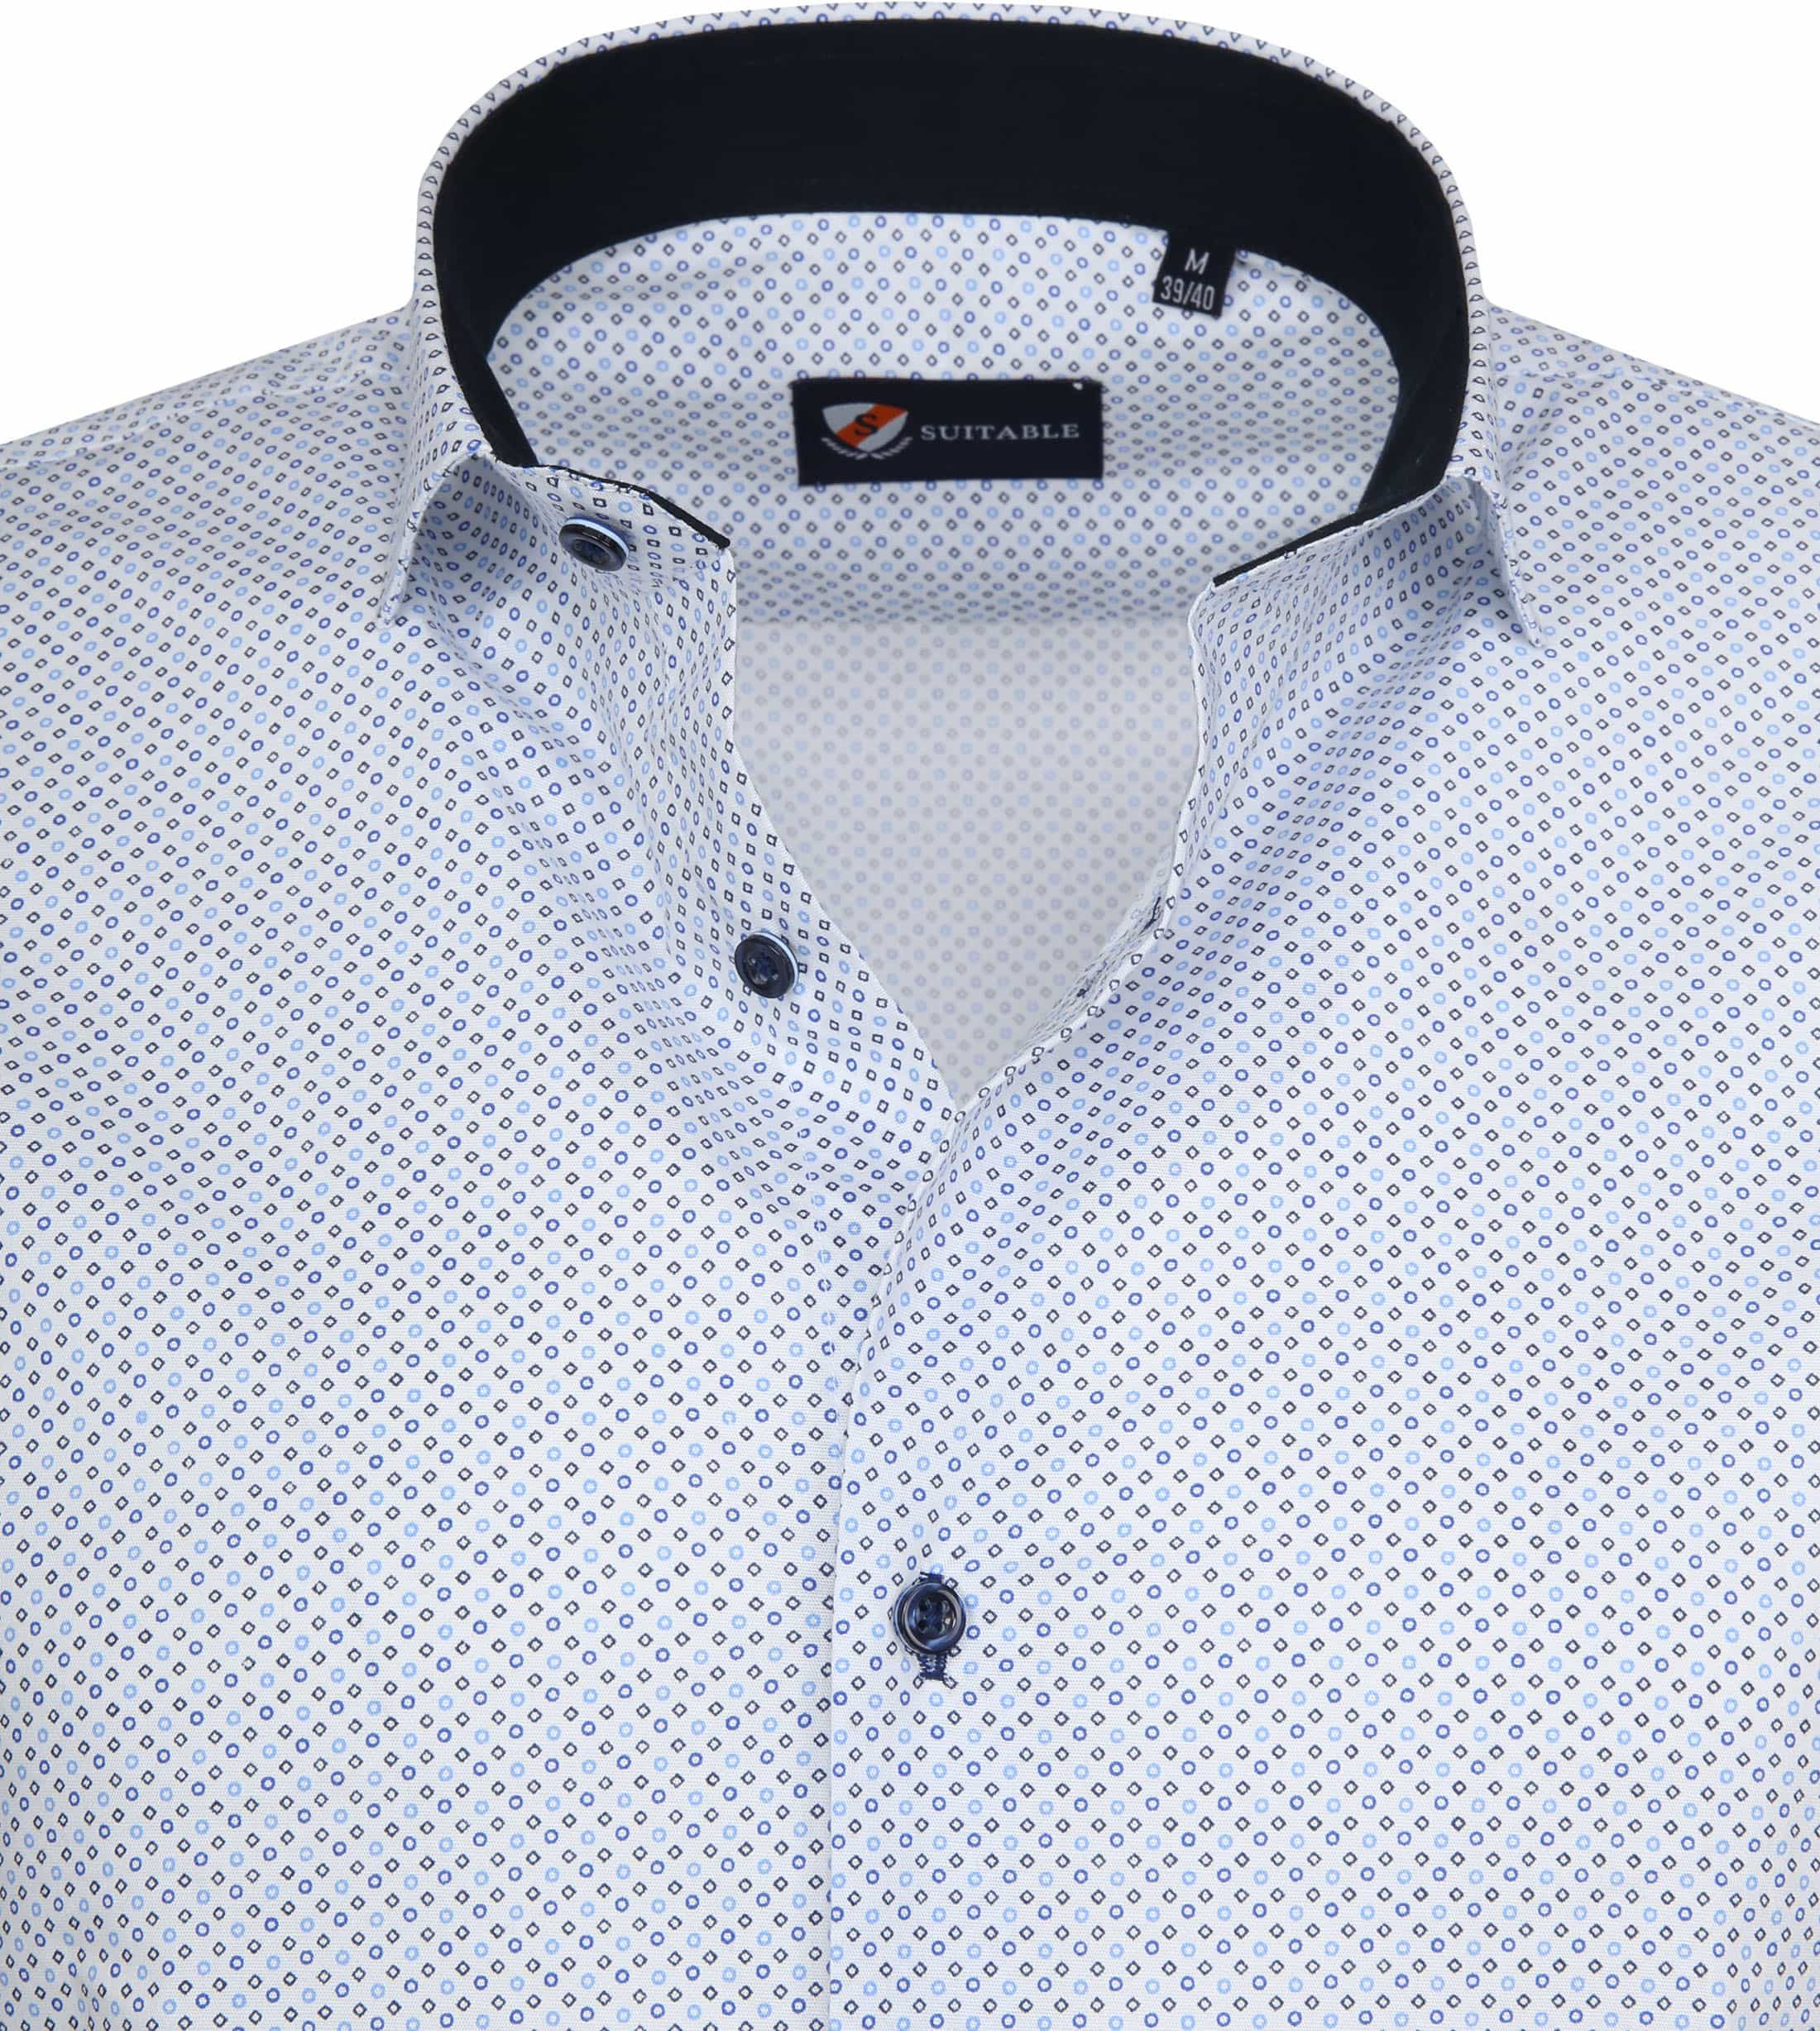 Suitable Shirt SS Carre White Blue foto 1